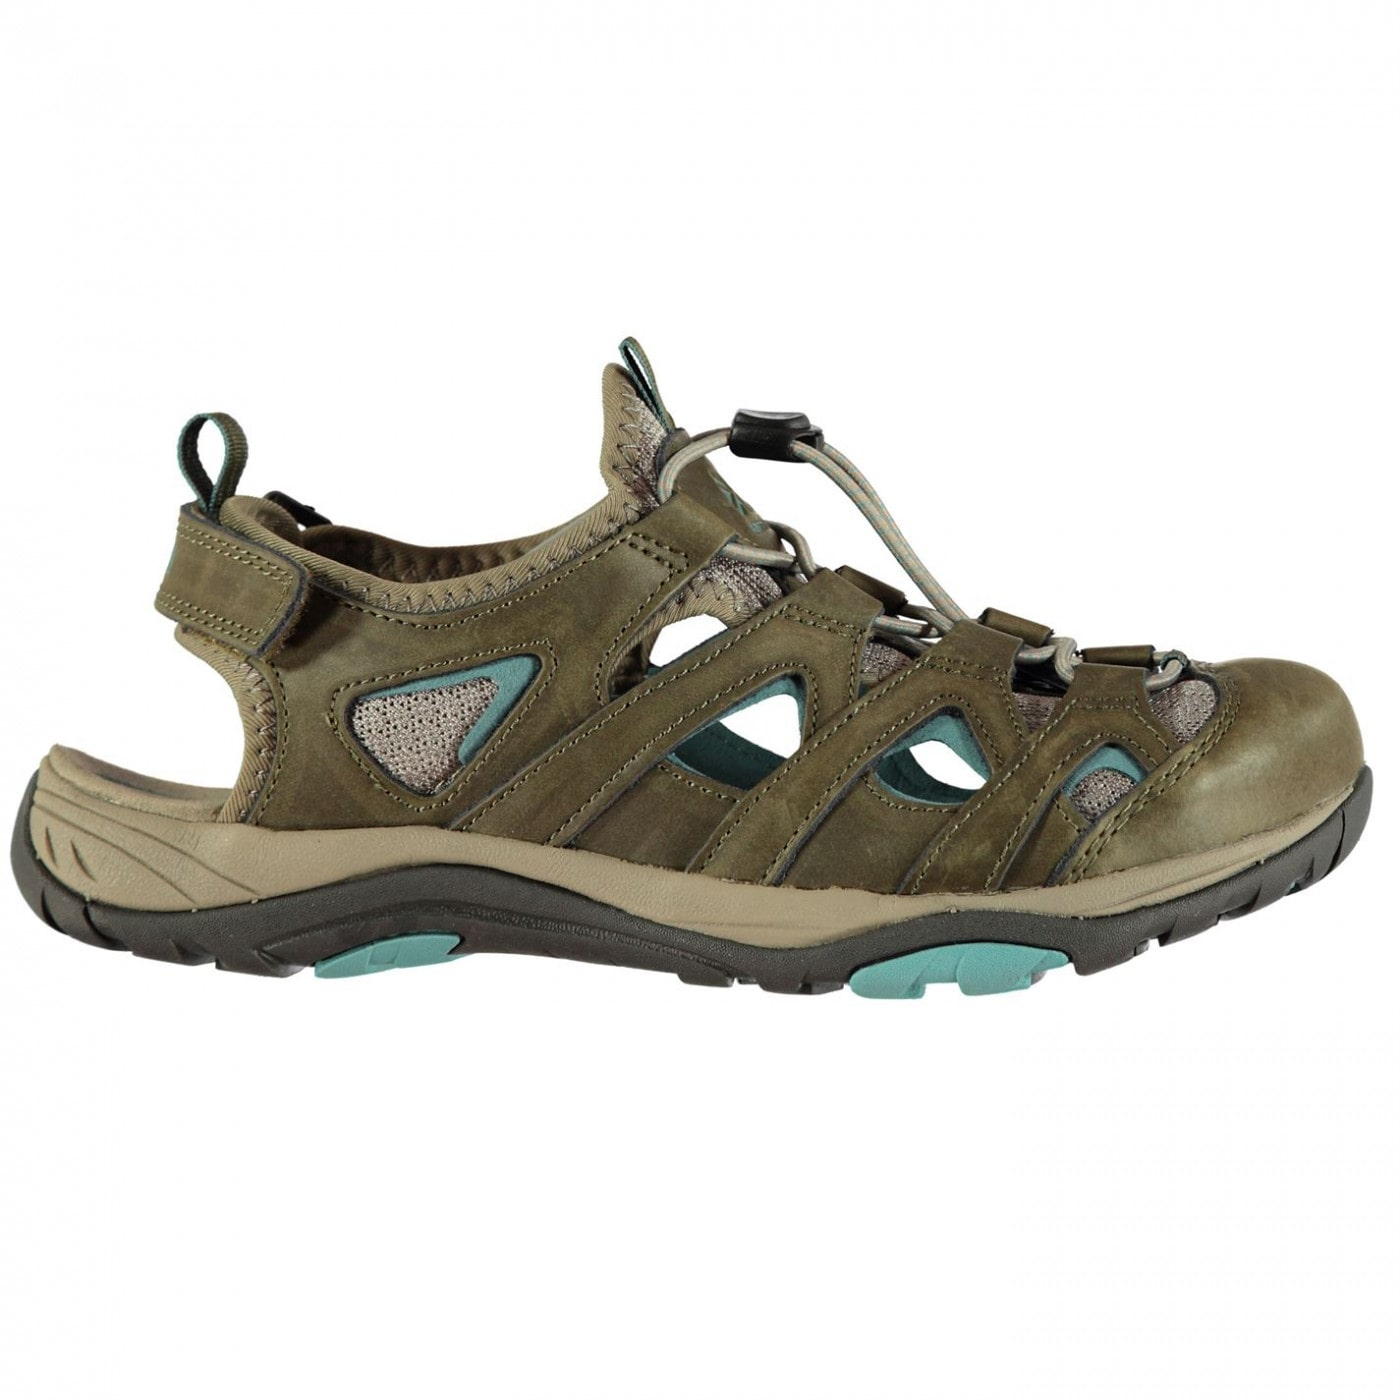 Women's sandals Karrimor Sydney